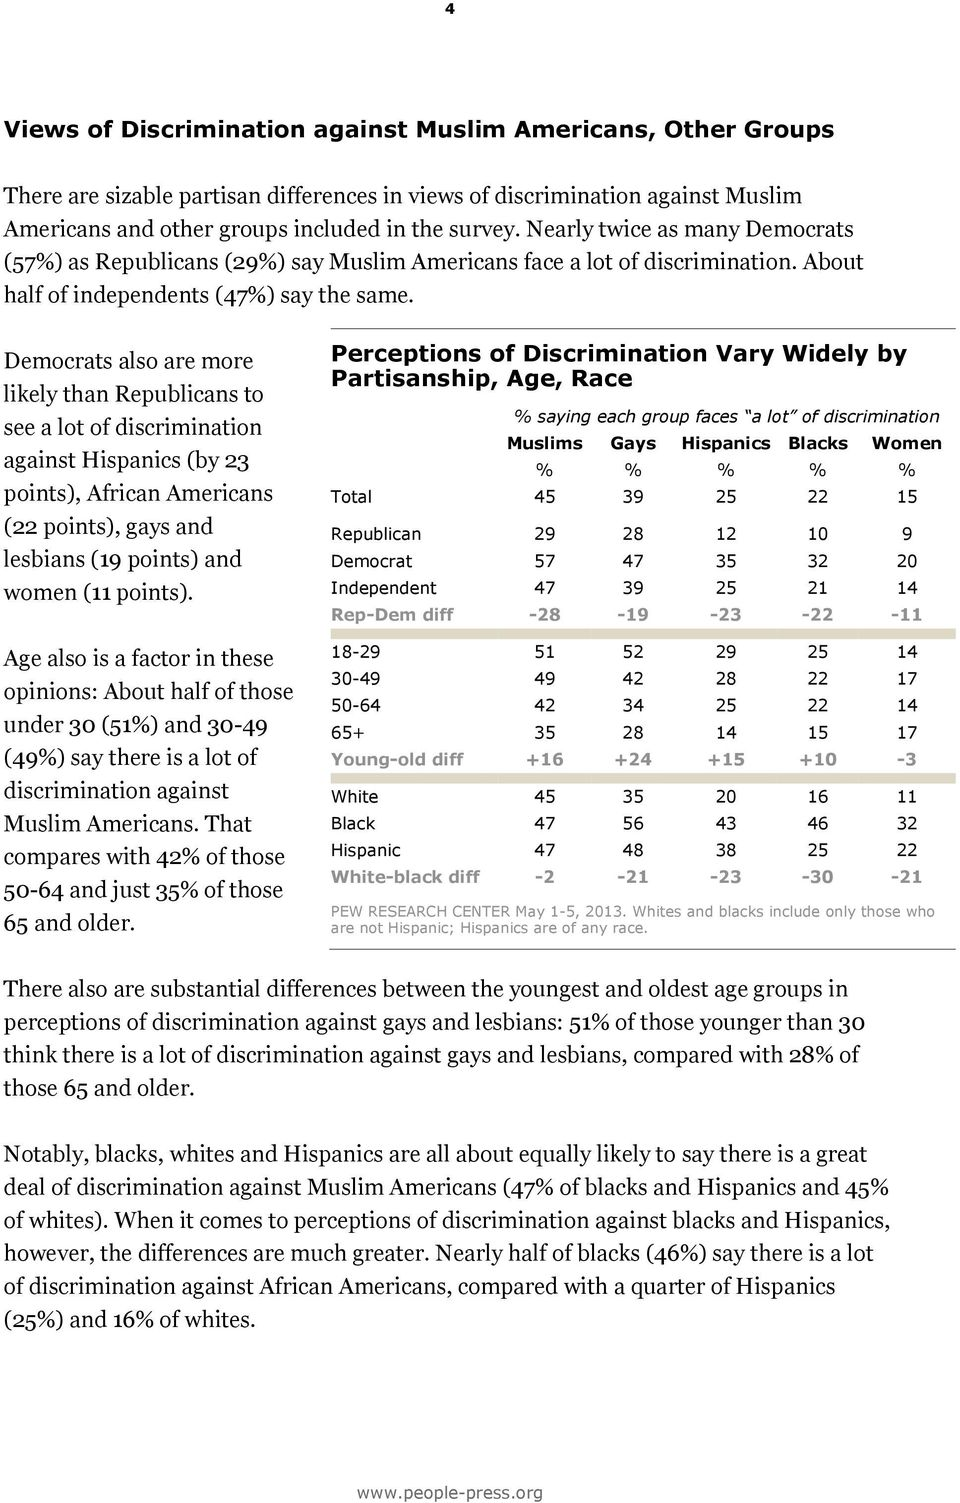 Democrats also are more likely than Republicans to see a lot of discrimination against Hispanics (by 23 points), African Americans (22 points), gays and lesbians (19 points) and women (11 points).